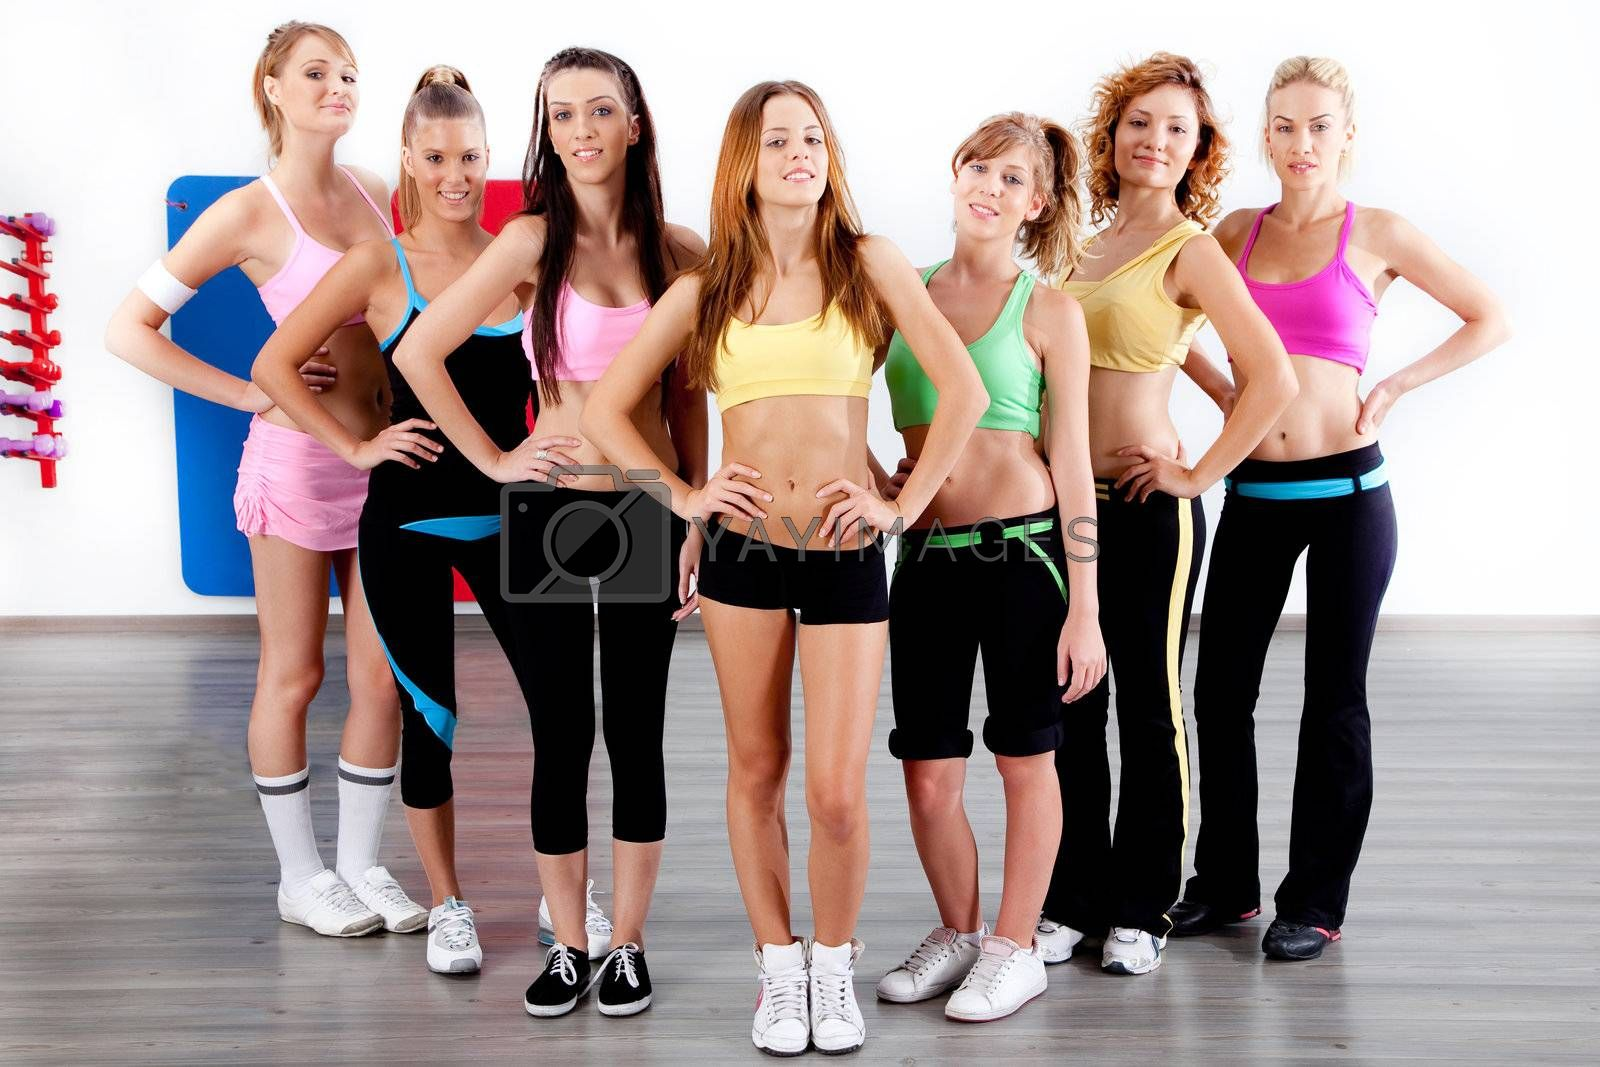 image of fit women at gym posing for camera